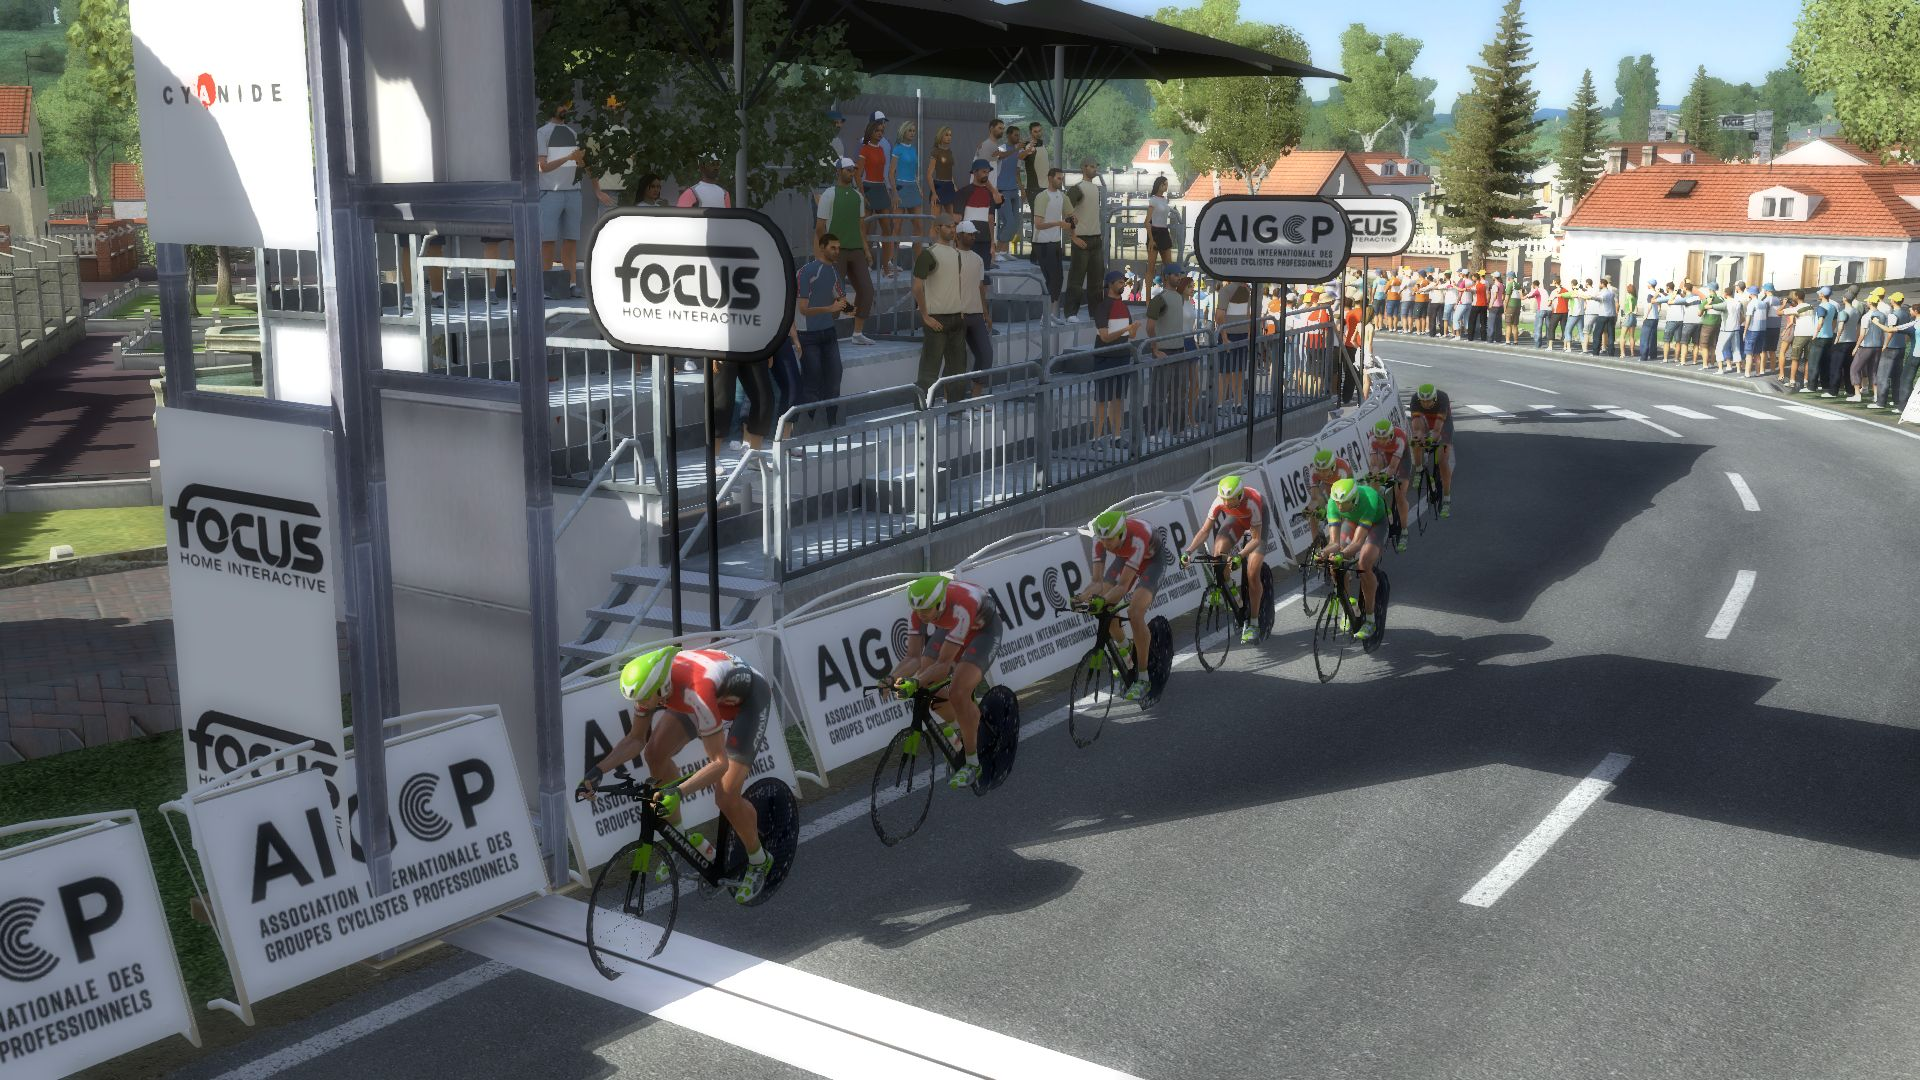 pcmdaily.com/images/mg/2019/Races/HC/Slovenie/mg19_slo_s01_27.jpg